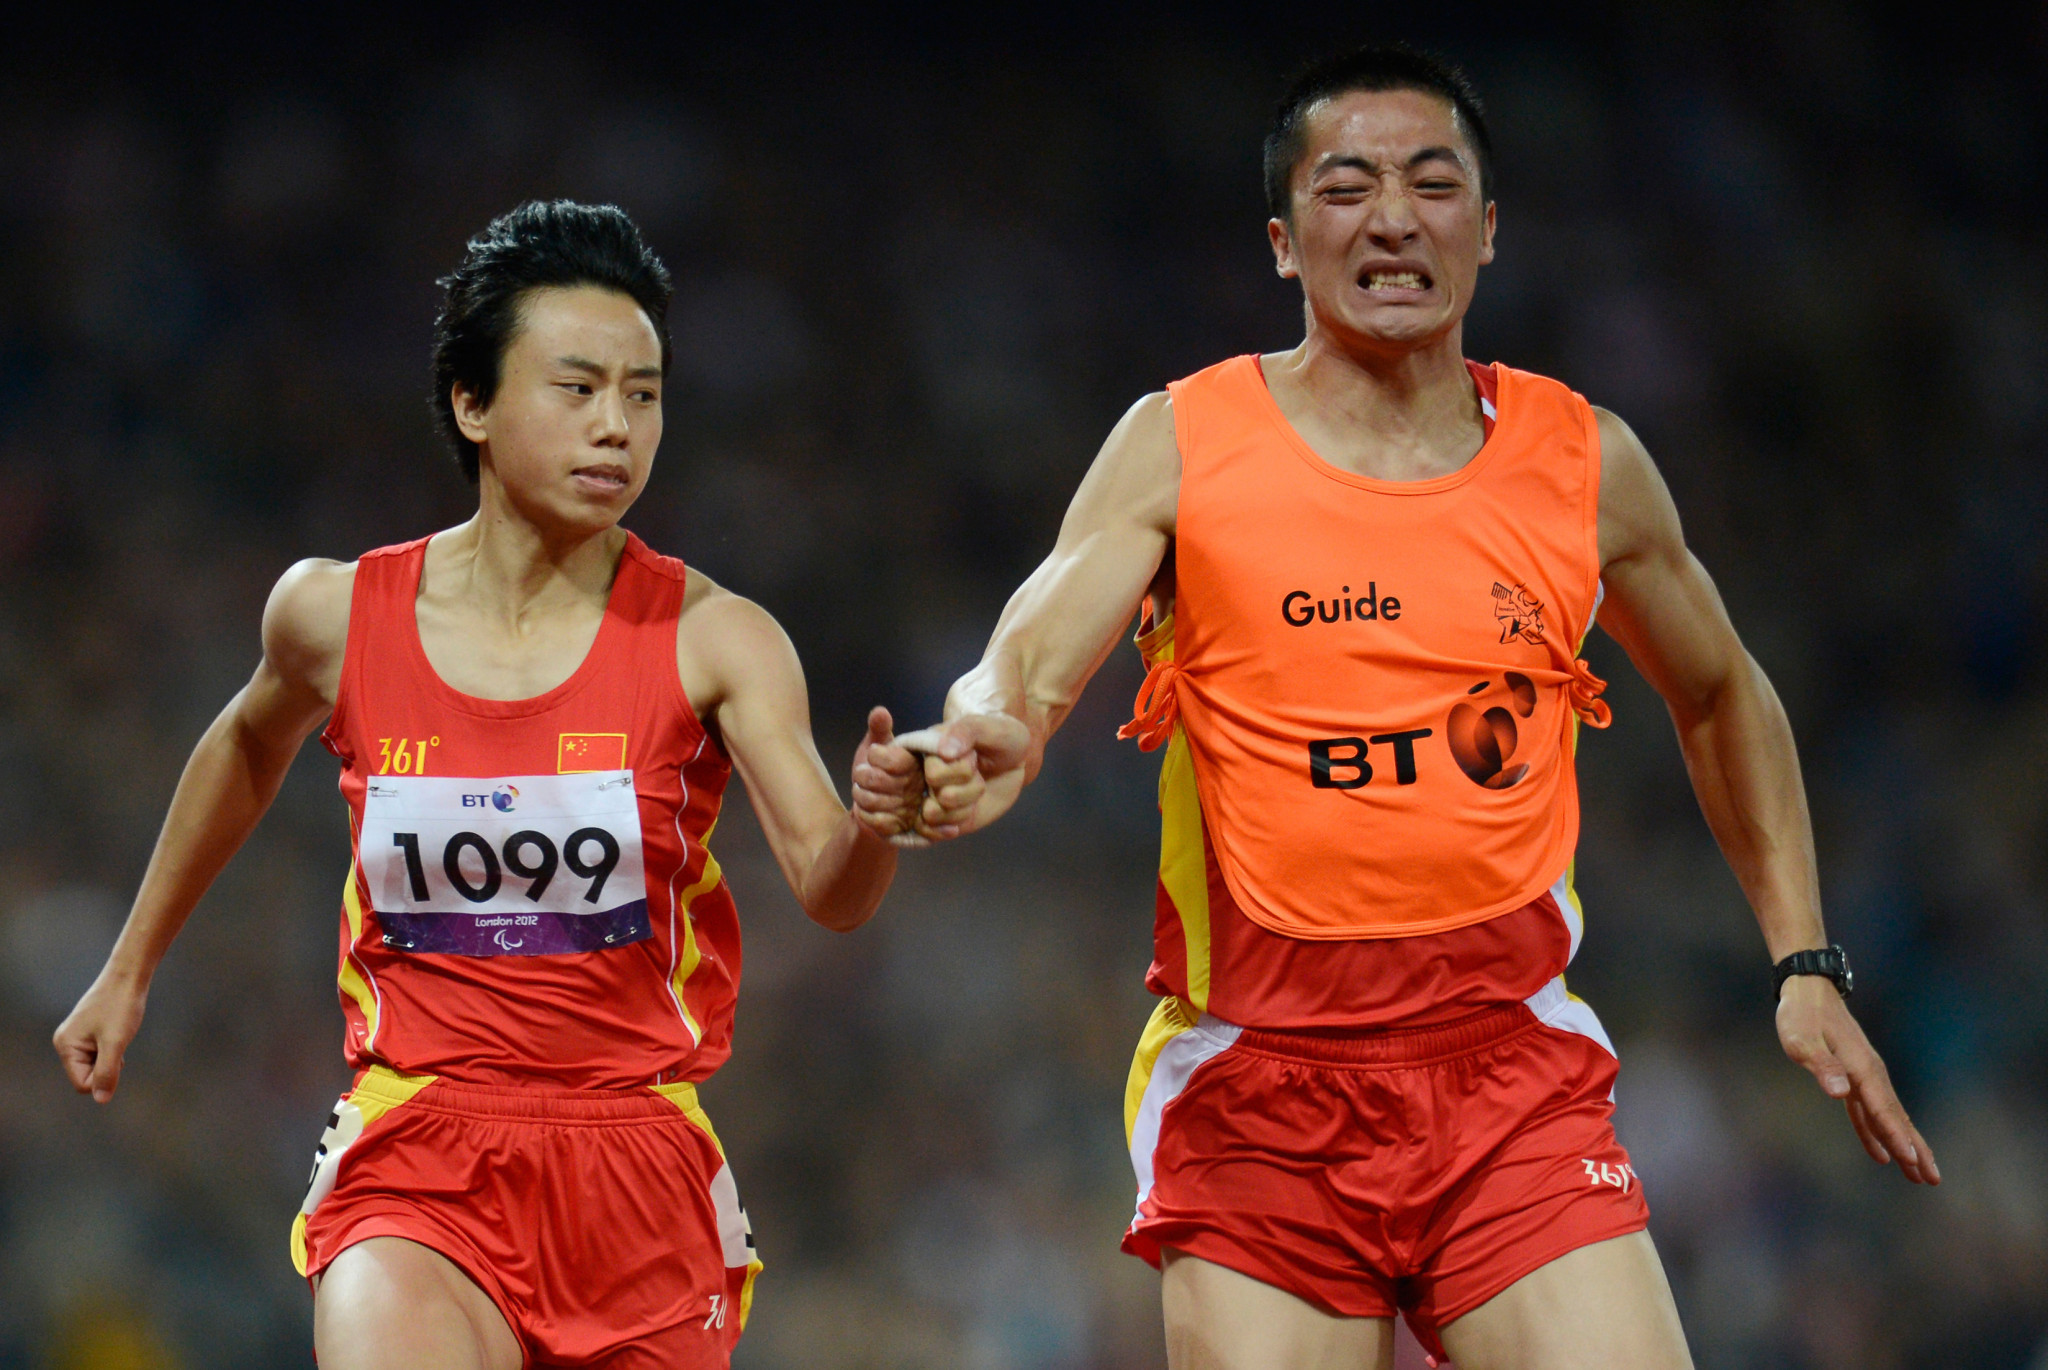 Sprinter Zhou records world leading long jump attempt at home World Para Athletics Grand Prix